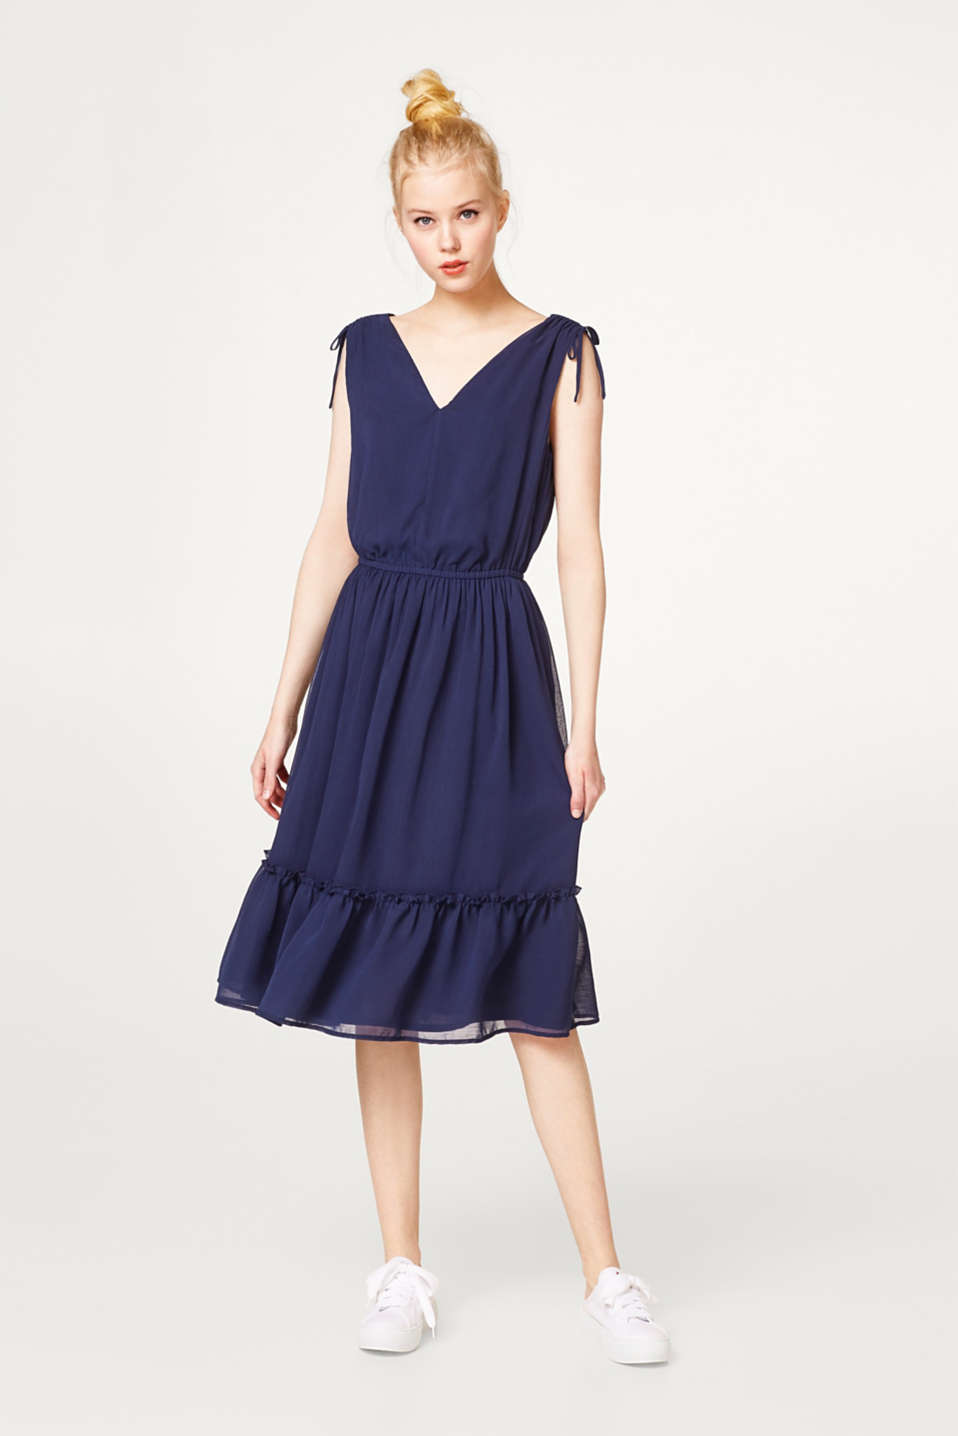 Midi dress in delicate crinkle chiffon